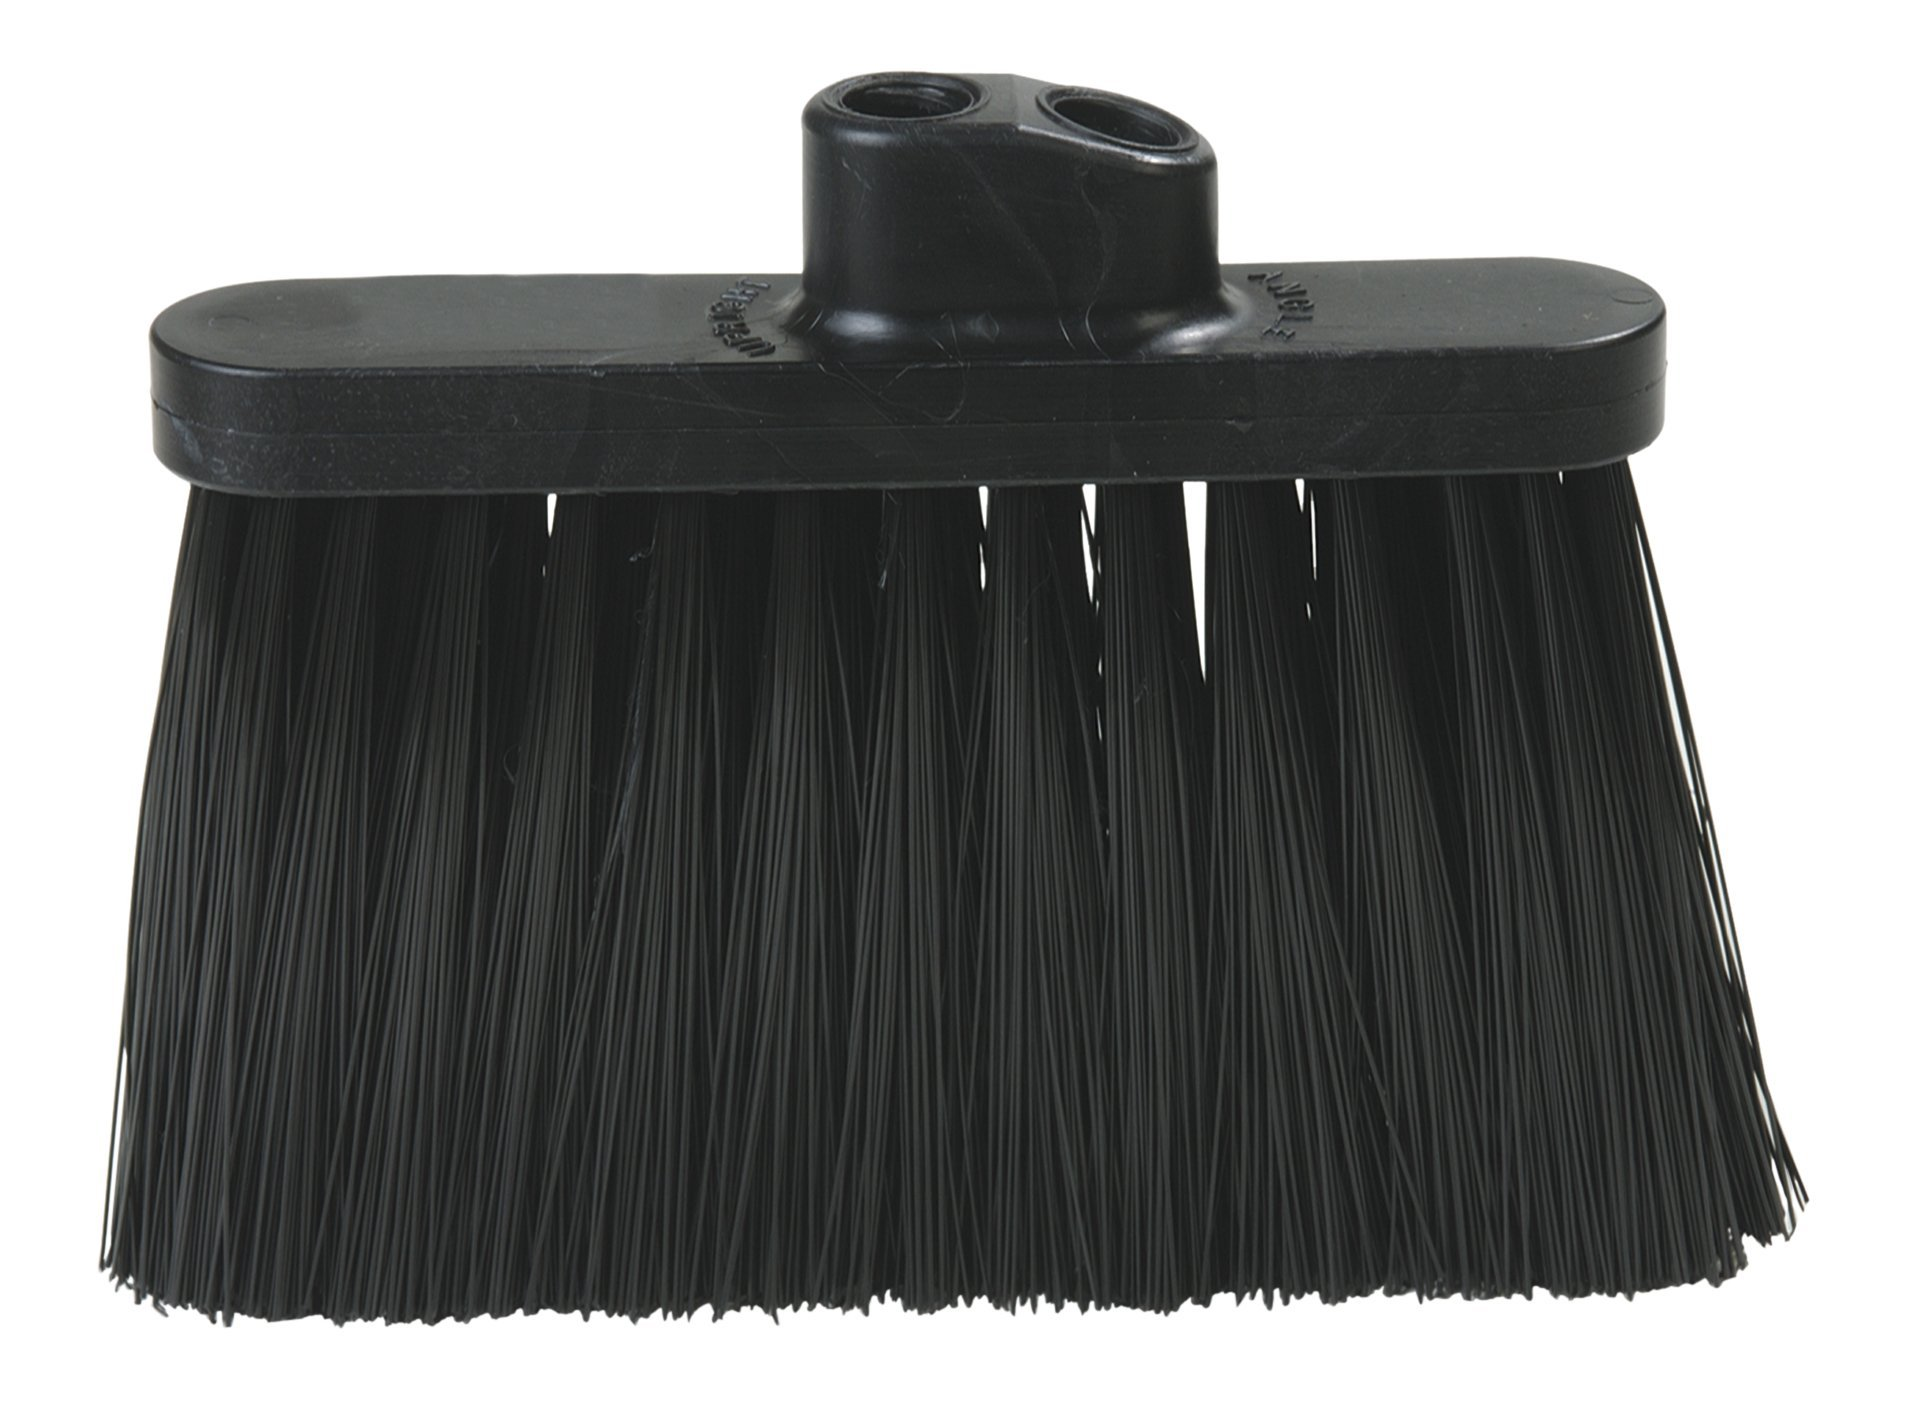 Carlisle 3687403 Flo-Pac Duo-Sweep Warehouse Broom Head, Black Plastic Block, 7''-Long Black Synthetic Bristles, 13'' W x 9'' H Overall (Pack of 12) by Carlisle